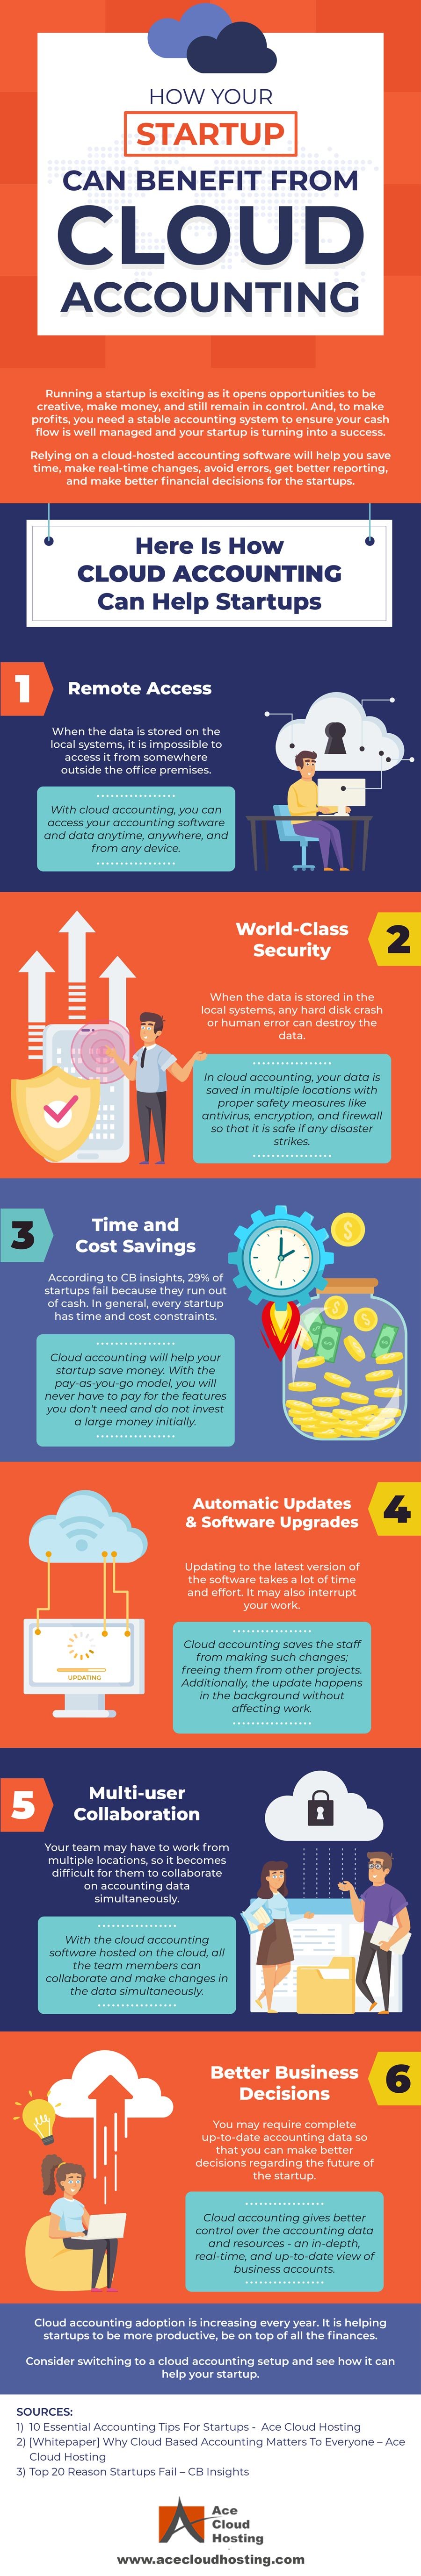 [Infographic] 6 Ways How Cloud Accounting Benefits Early-Stage Startups